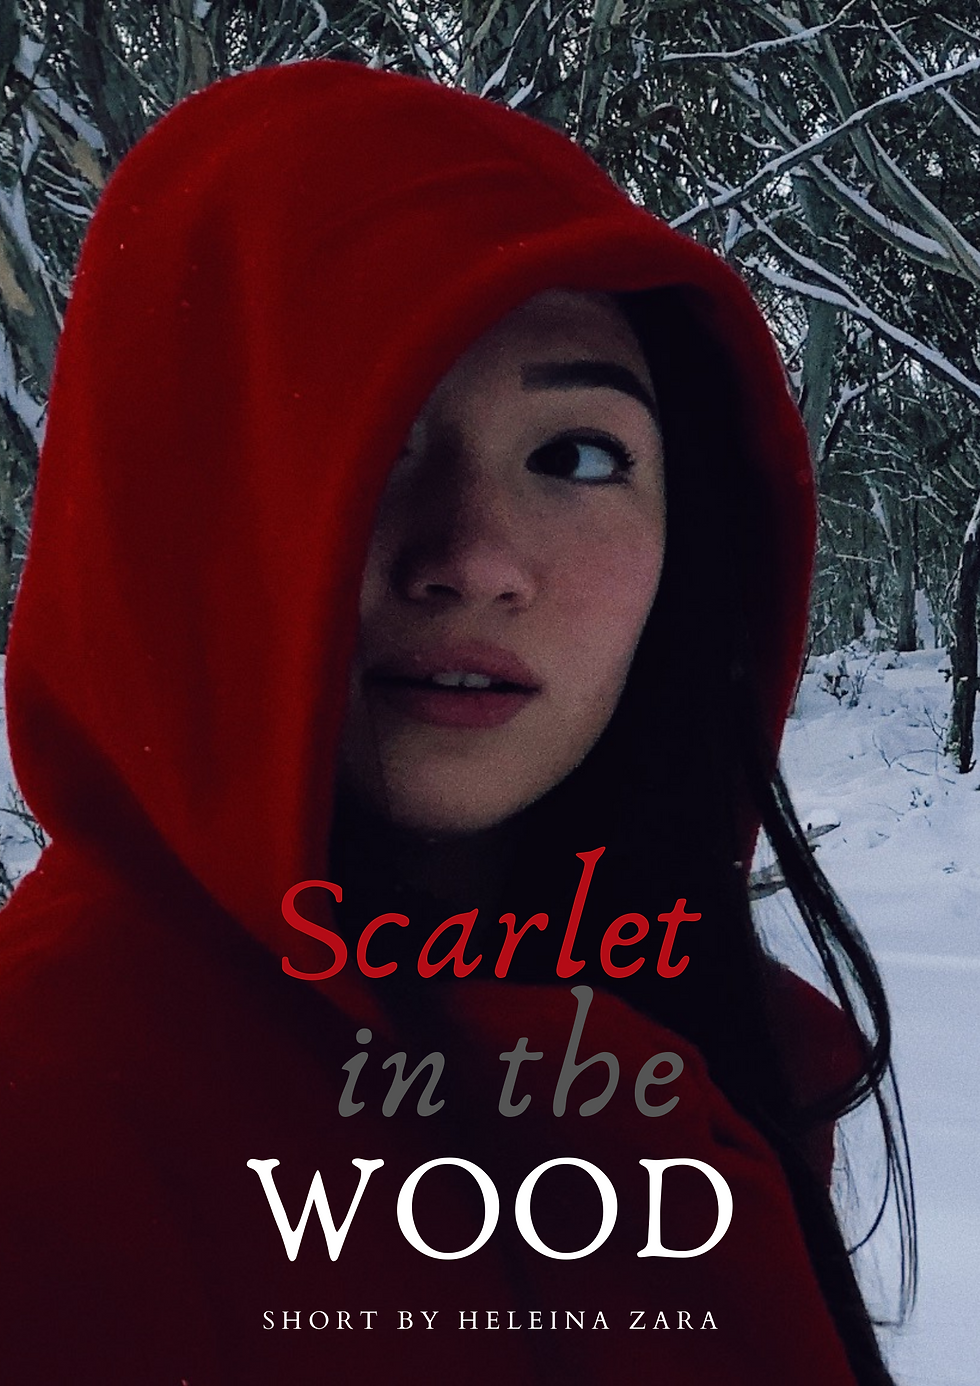 Scarlet in the wood Posters.png